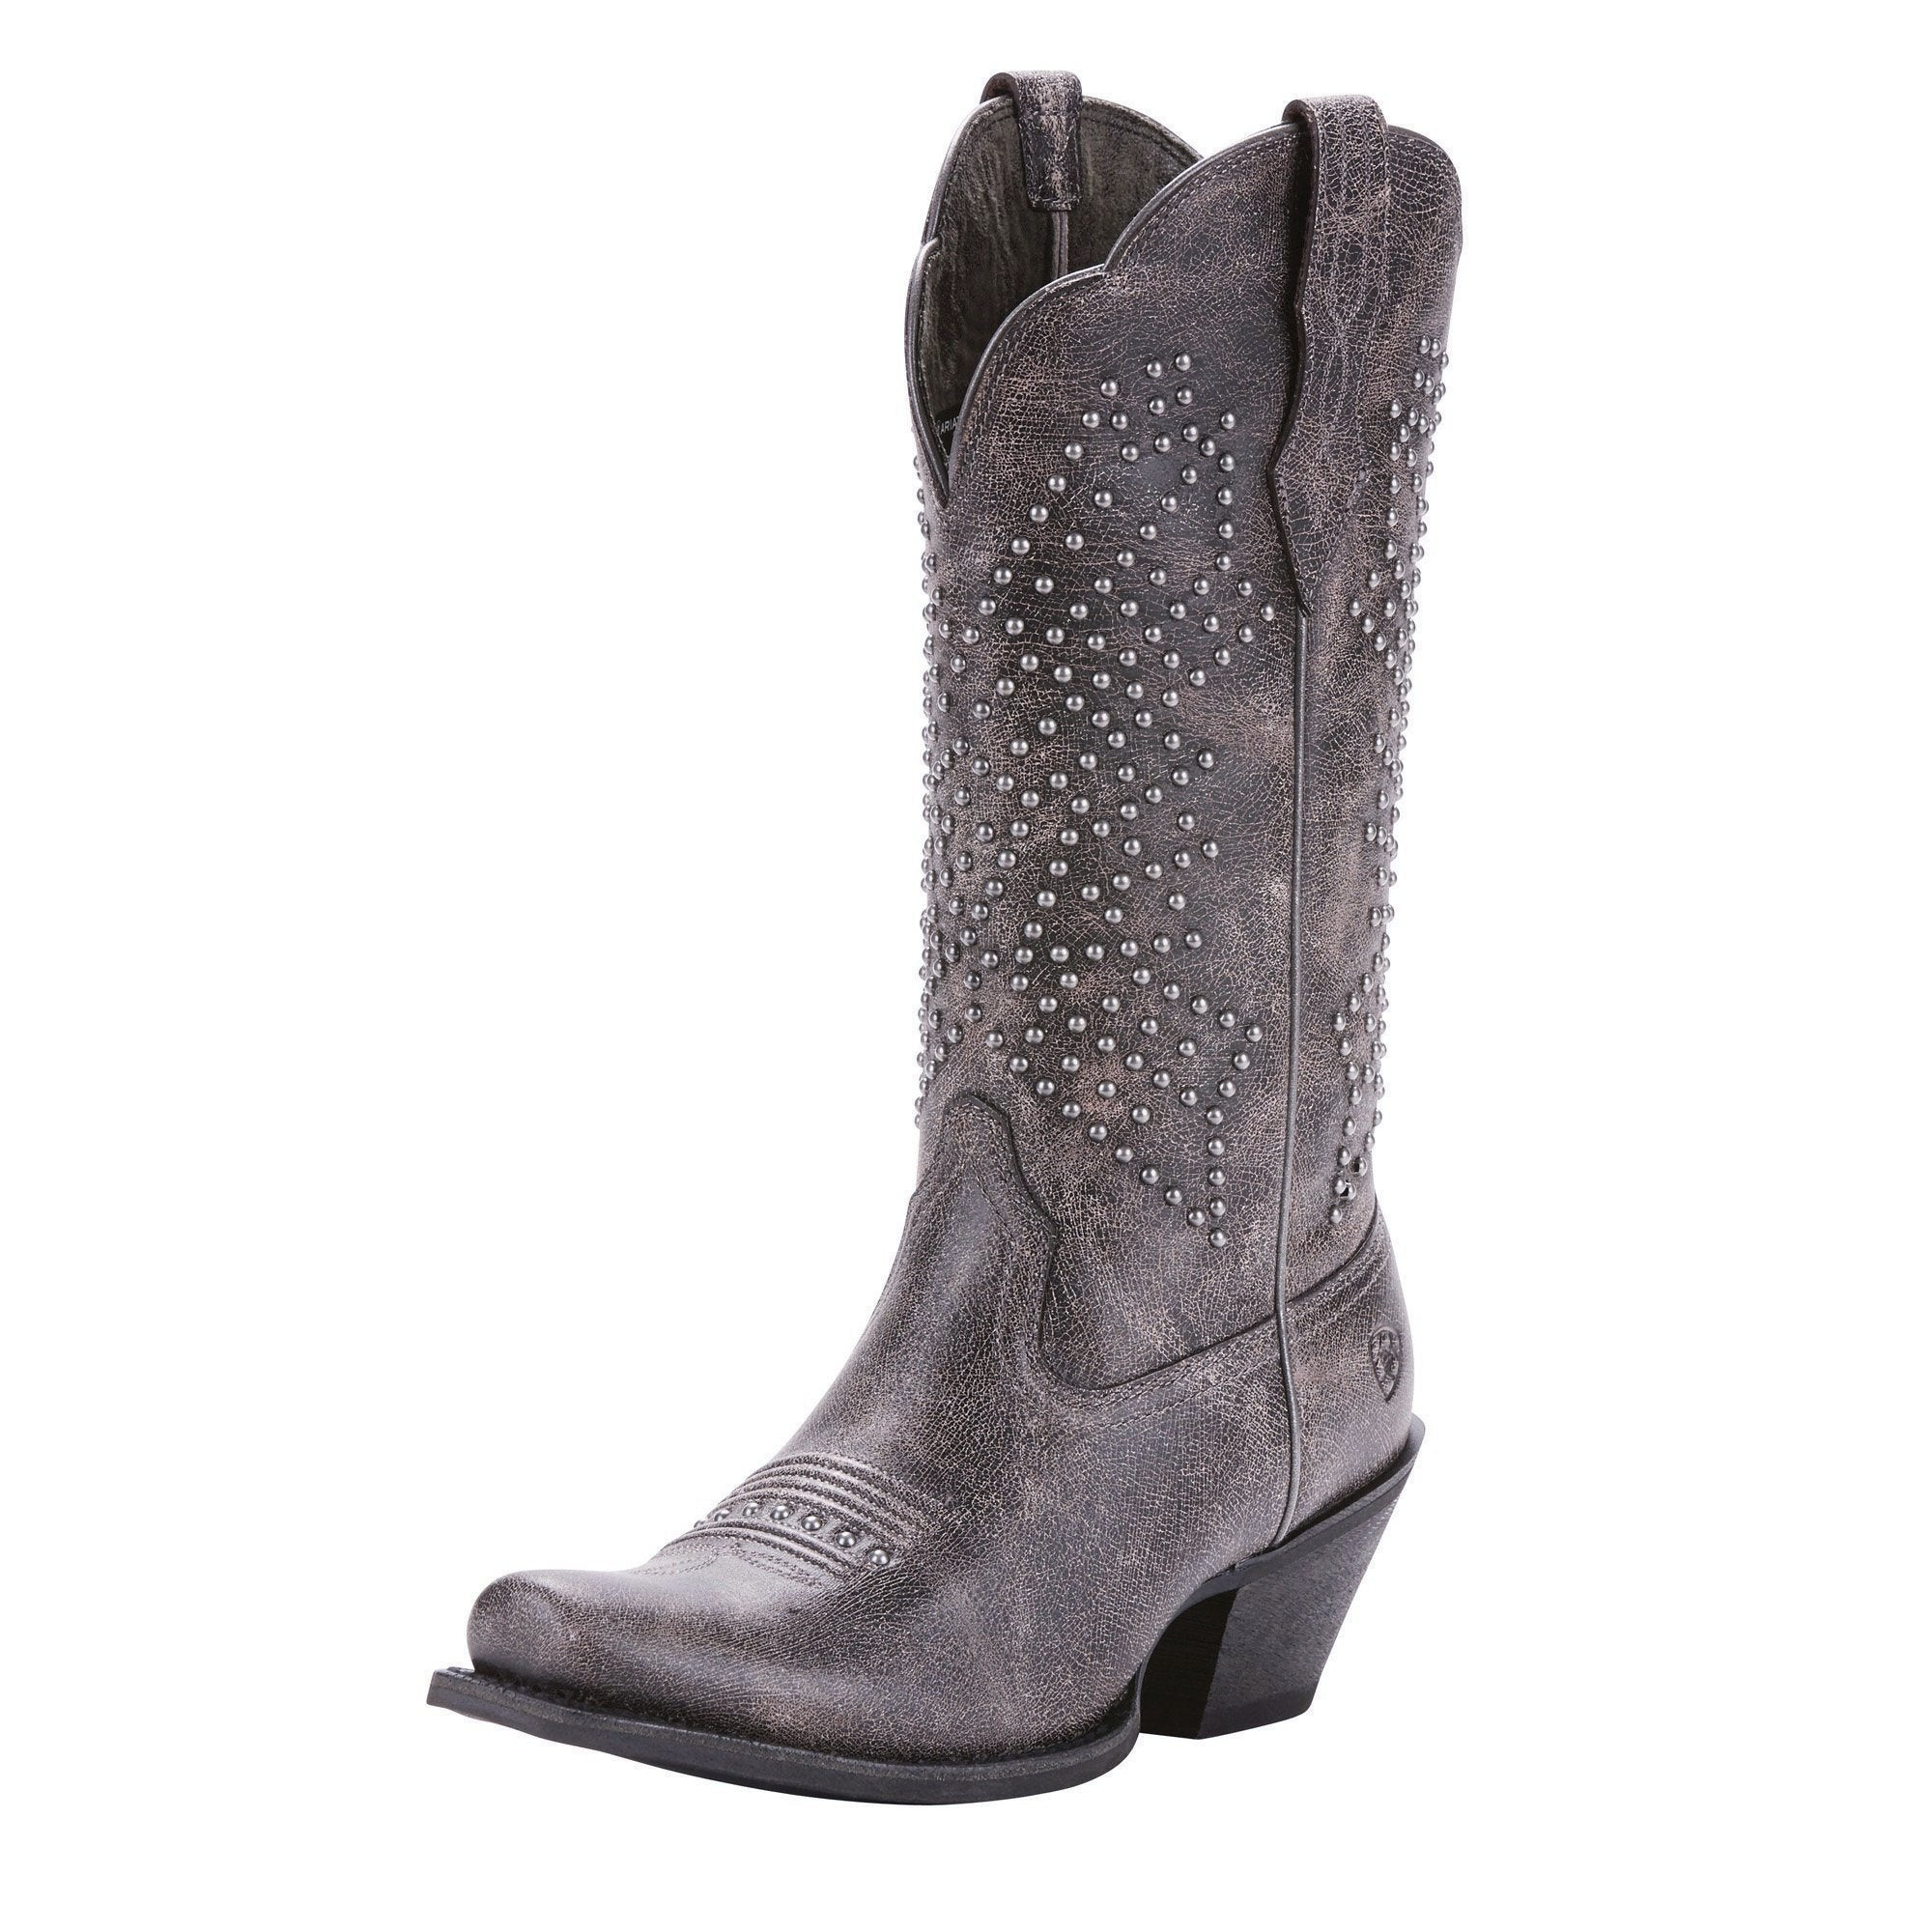 Women's Ariat Lakyn Square Toe Western Boots